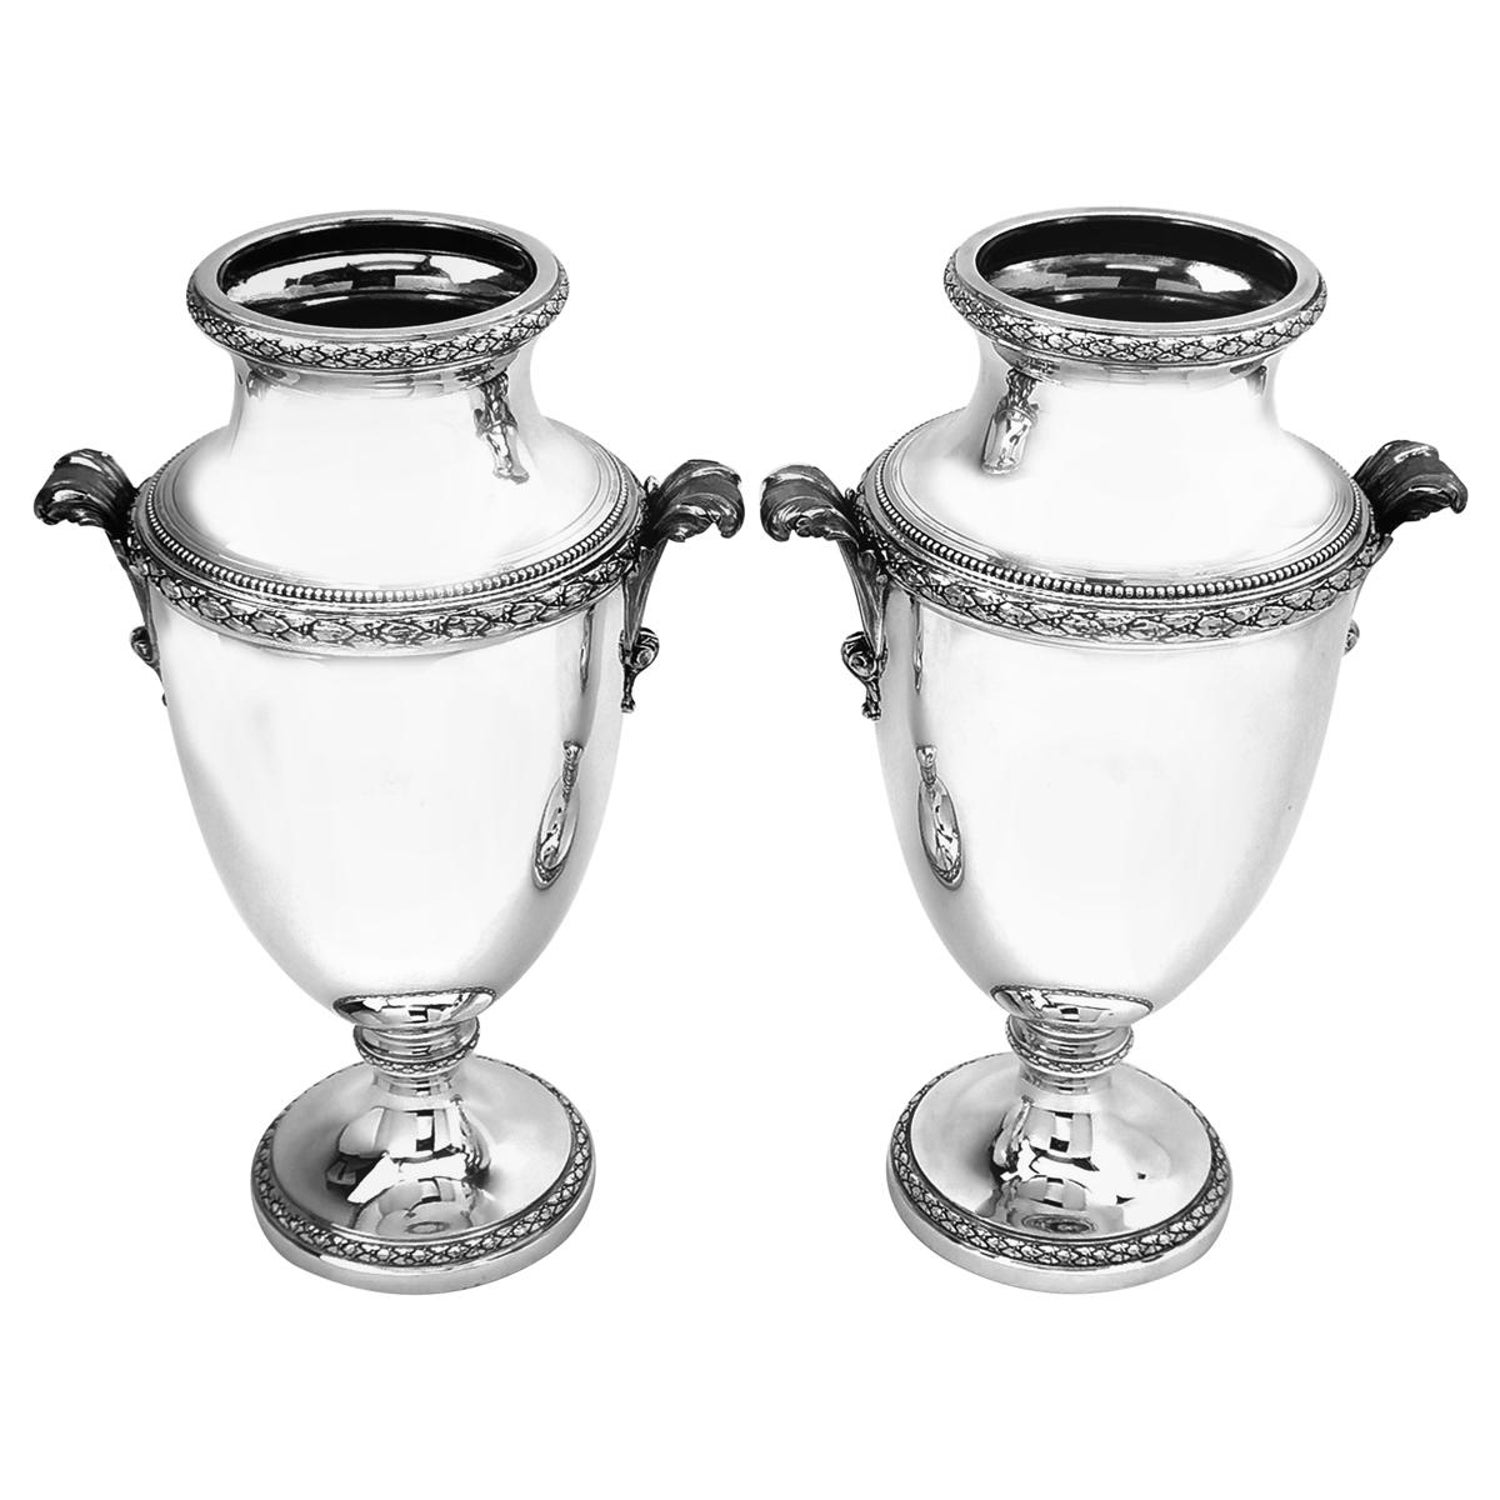 Pair of Antique French Solid Silver Vases circa 1900 Tetard Frères Paris, France